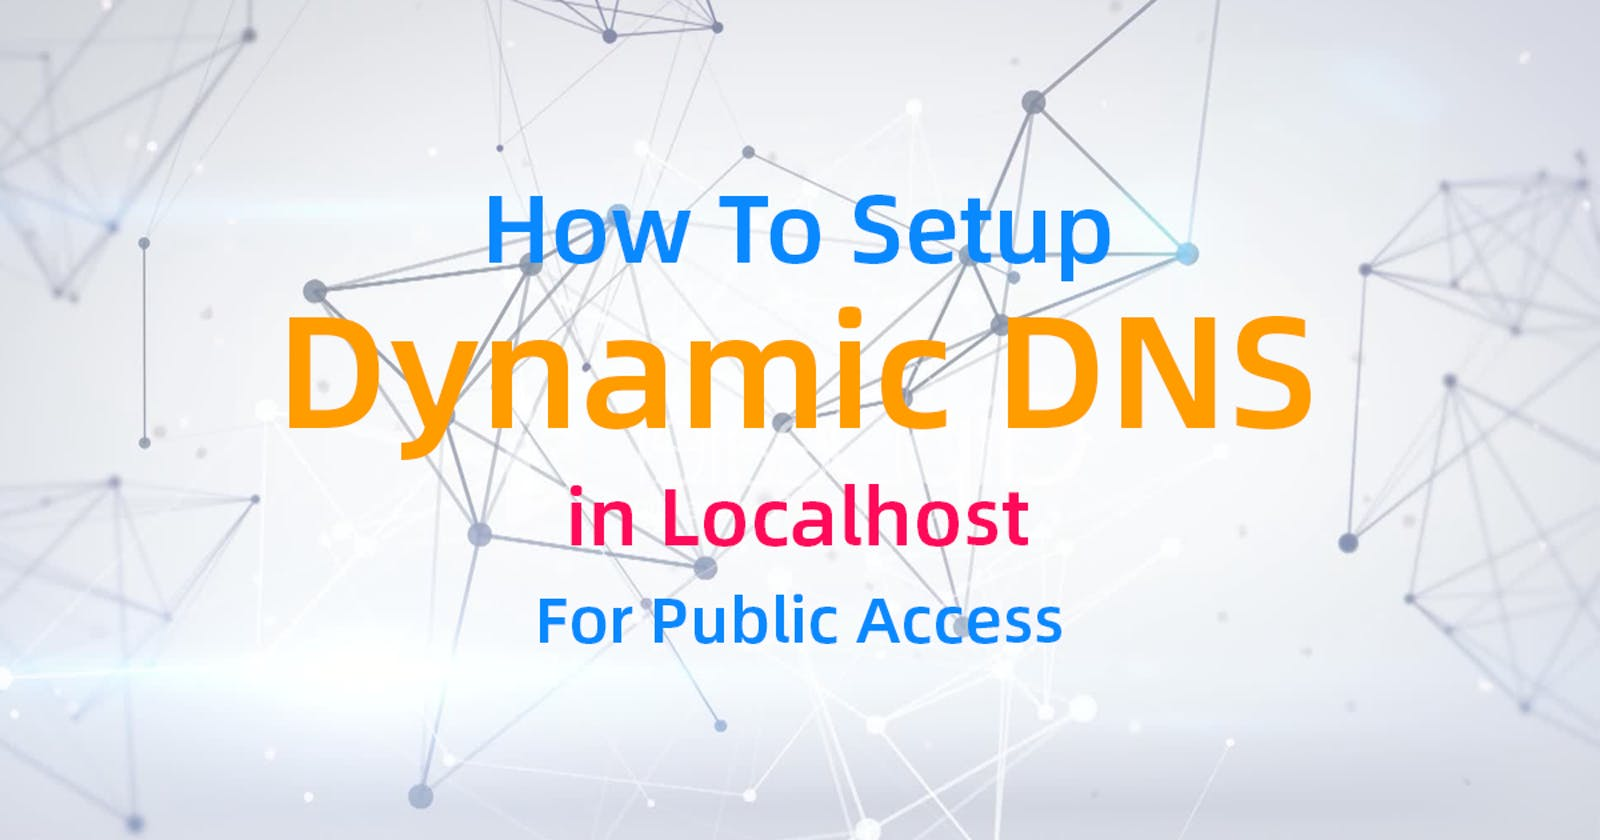 How To Setup Dynamic DNS in Localhost For Public Access